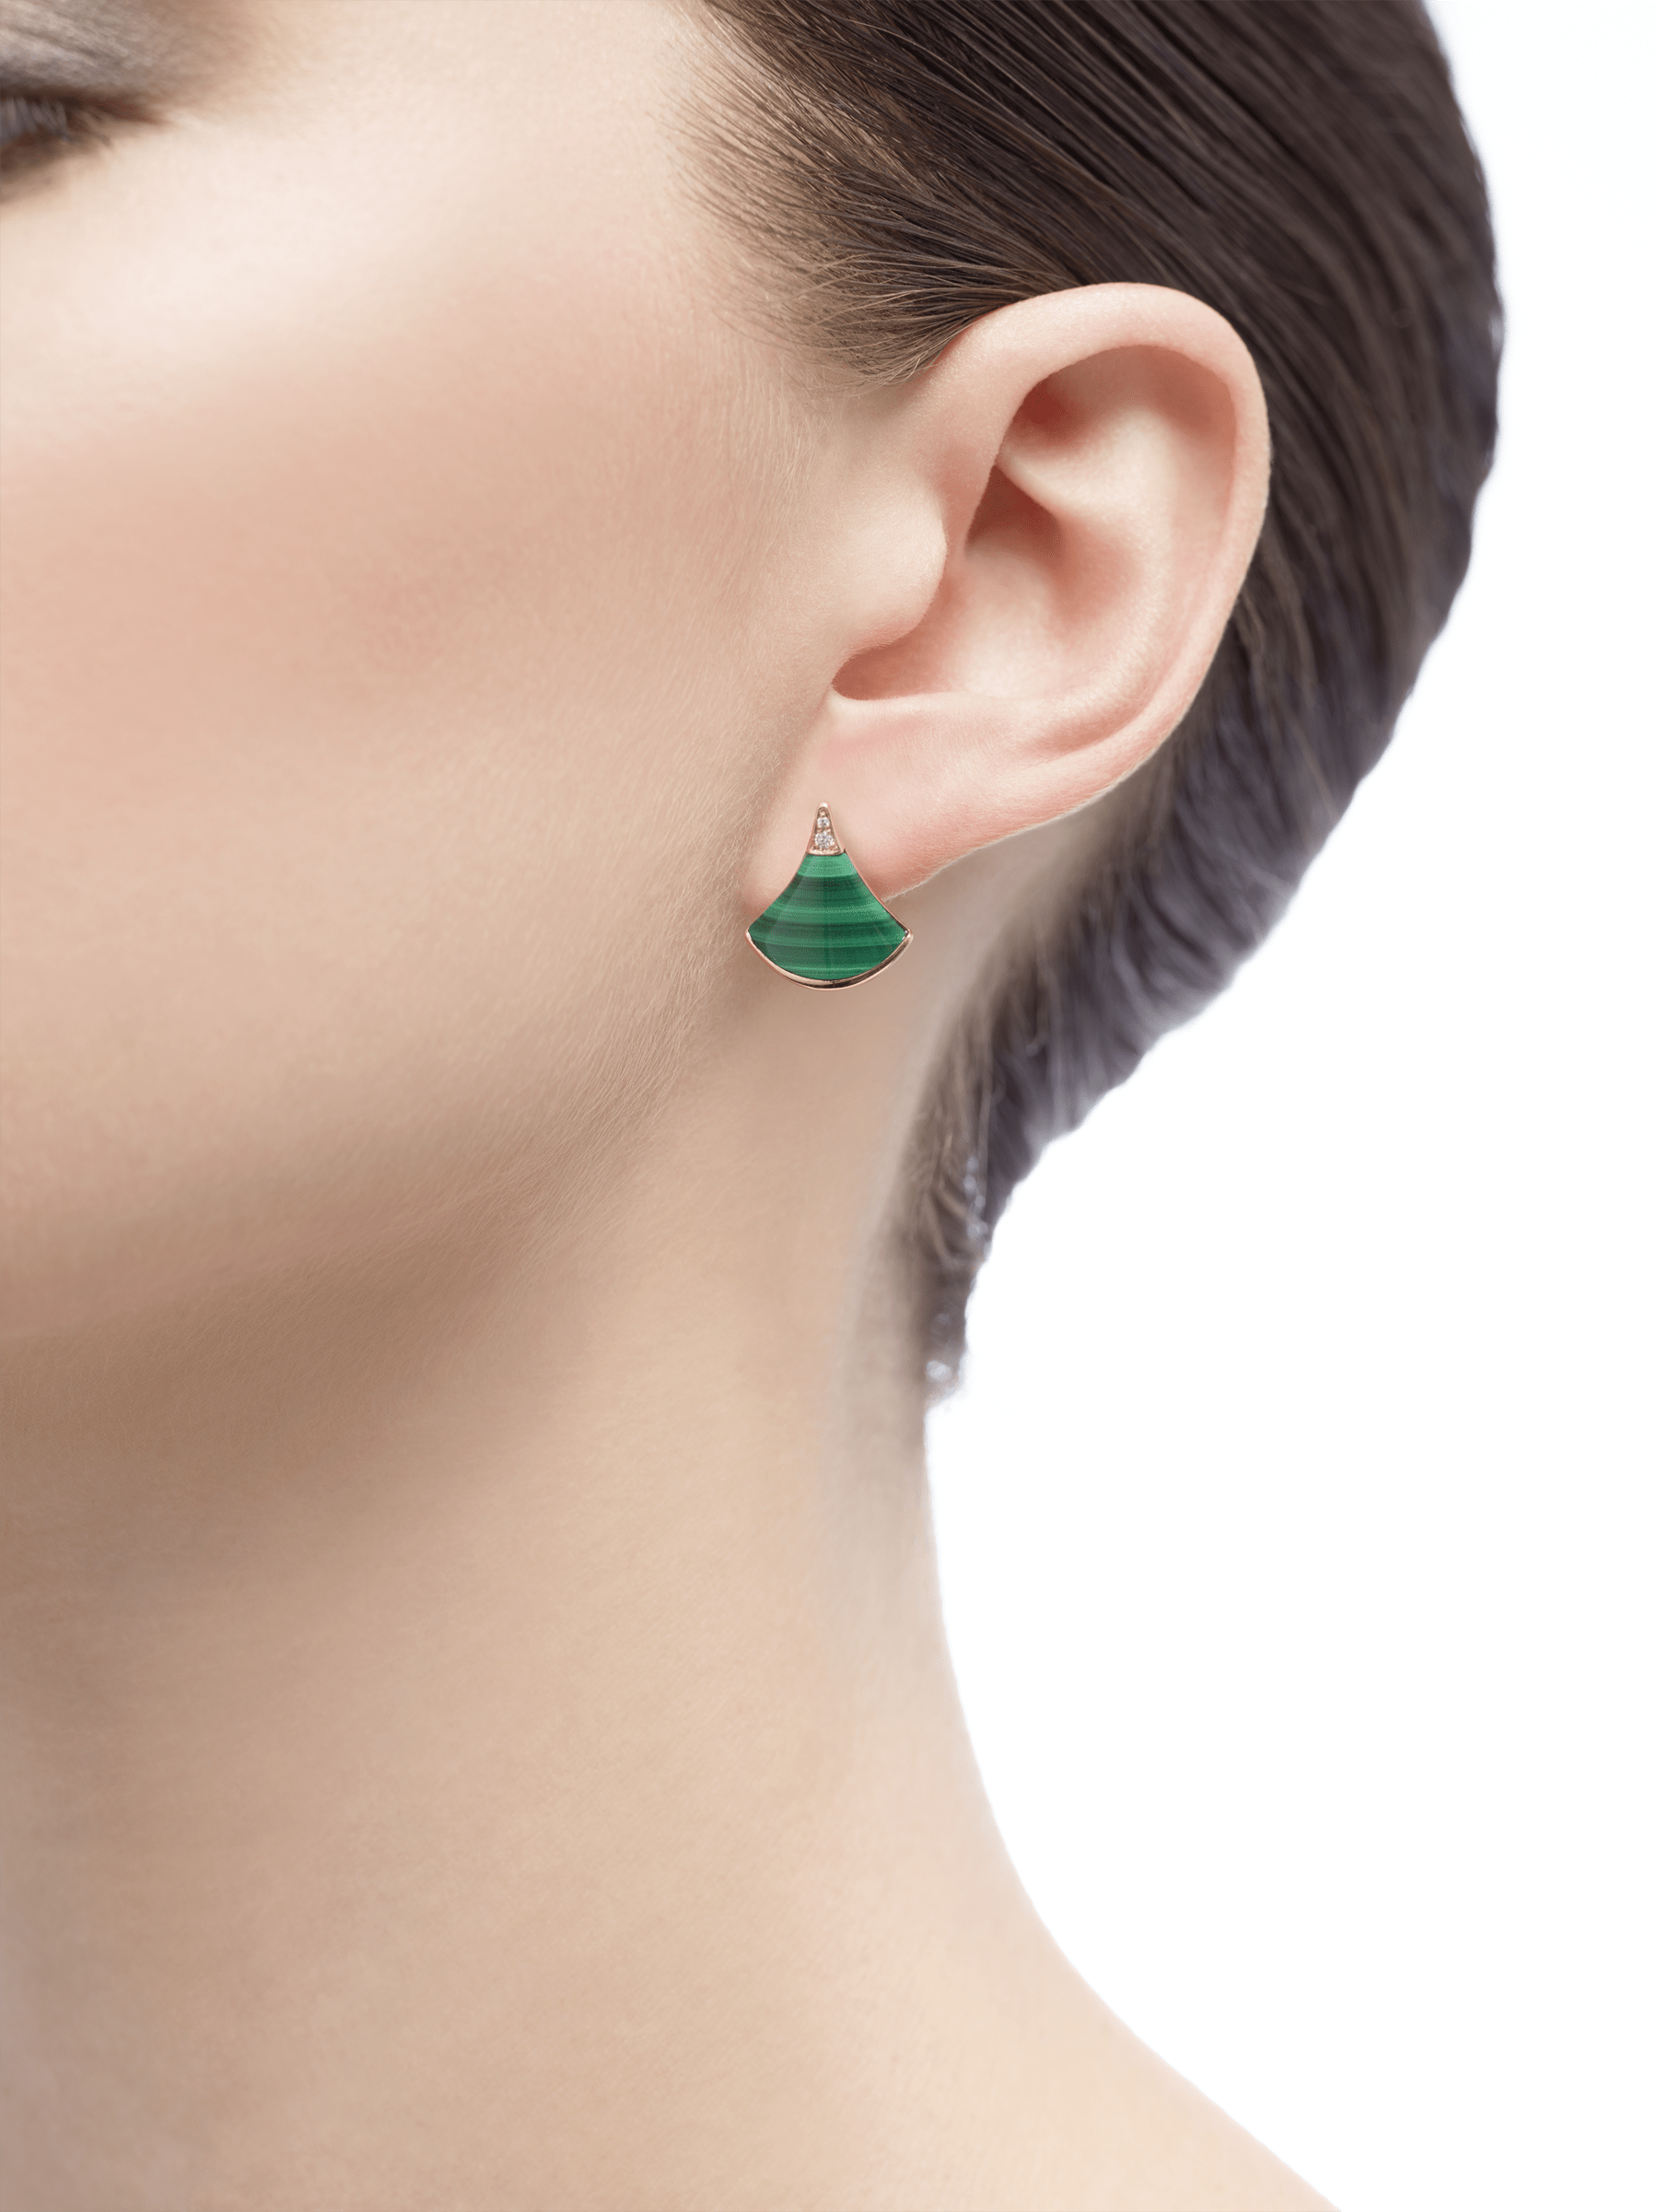 Boucles d'oreilles DIVAS' DREAM en or rose 18 K serties d'éléments en malachite et pavé diamants (0,03 ct) 355794 image 4